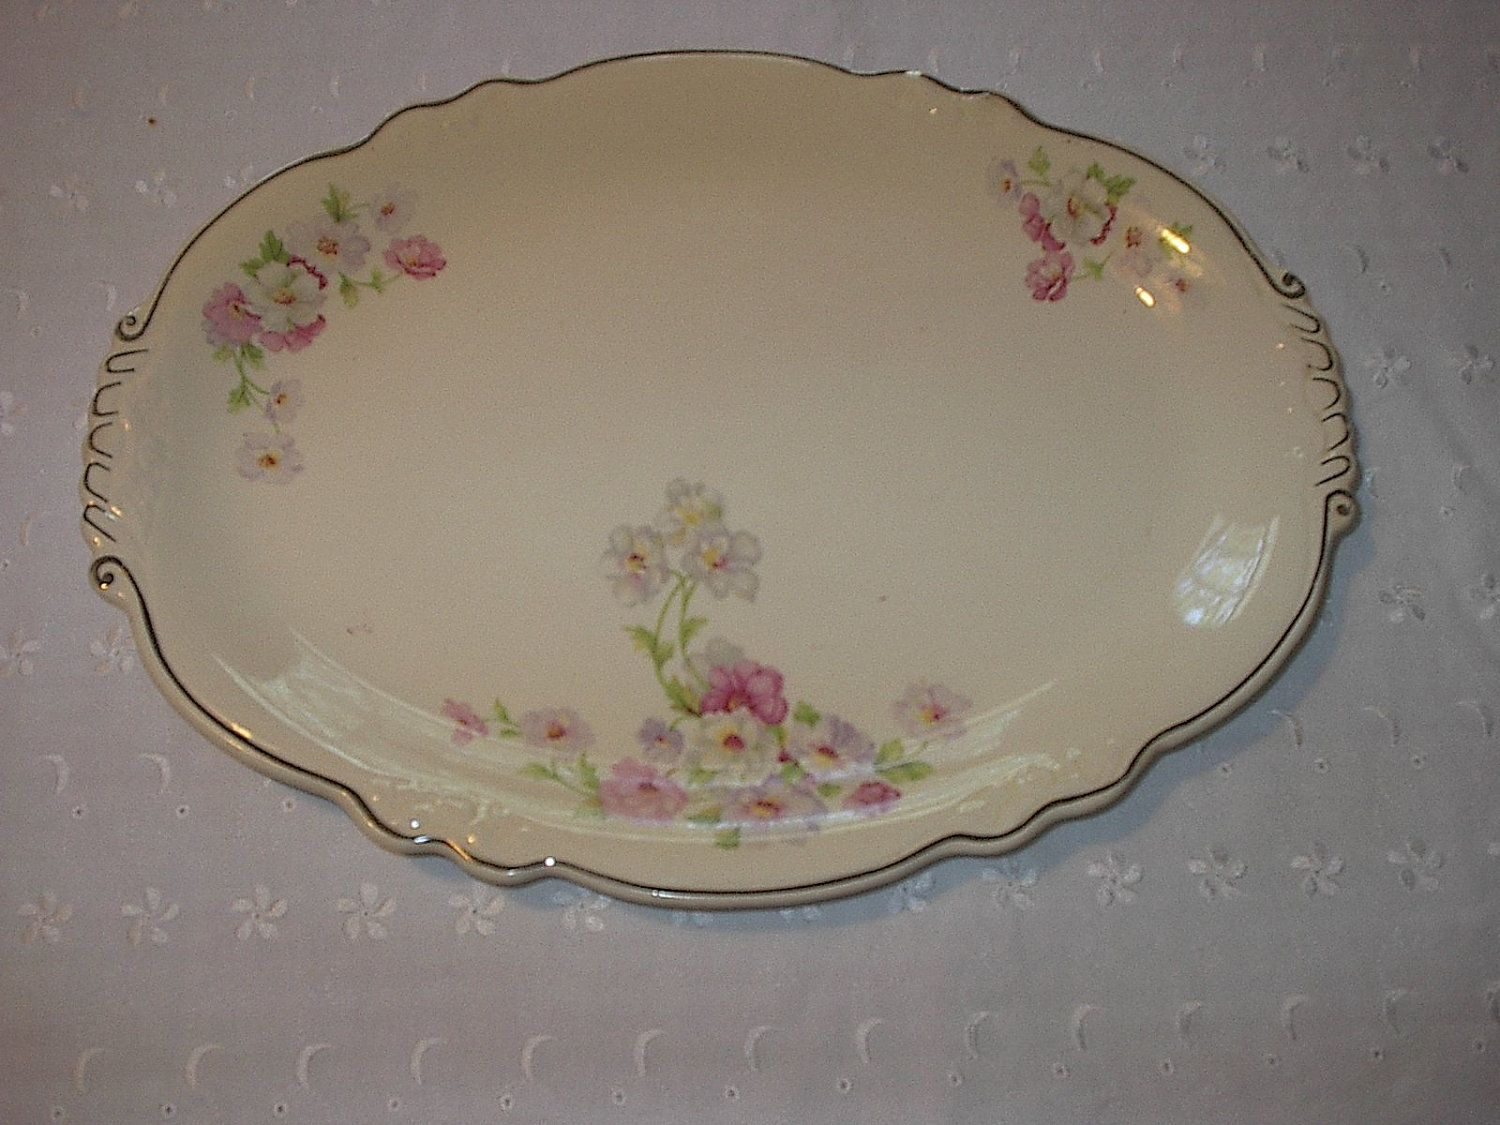 Old China Patterns antique dishes homer laughlin | old homer laughlin china patterns